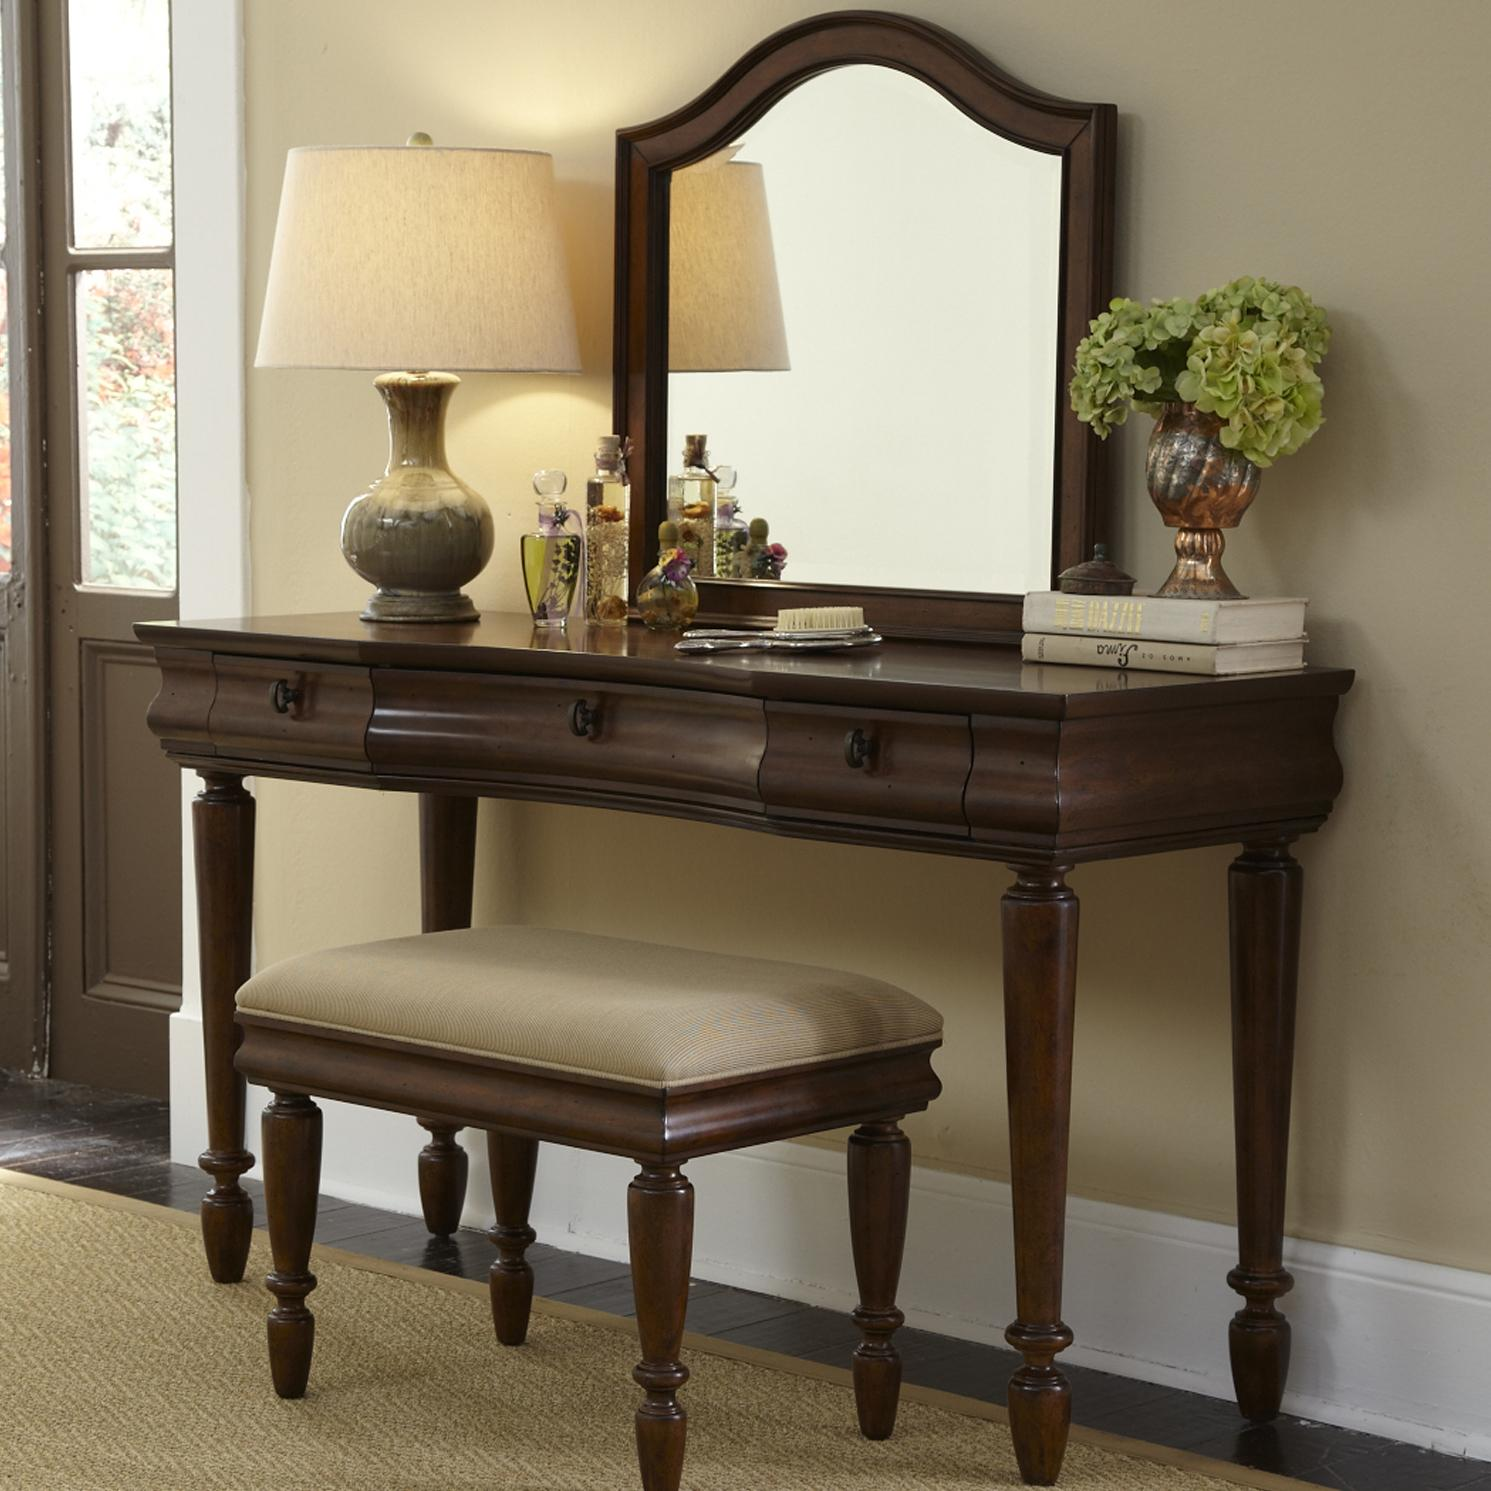 vanity set with turned legs by liberty furniture wolf and gardiner wolf furniture. Black Bedroom Furniture Sets. Home Design Ideas